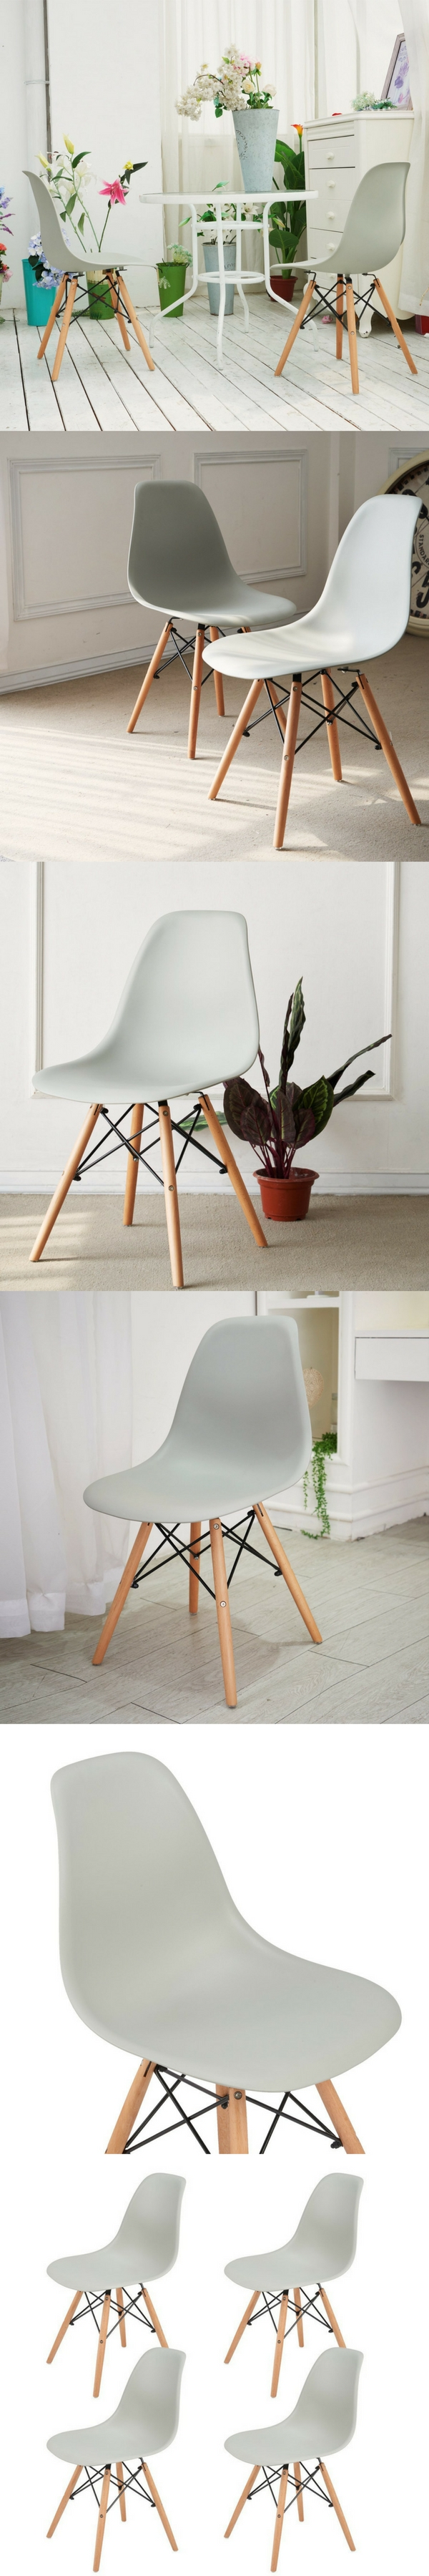 Amazon Chaises Scandinaves Lot De 4 Chaises Scandinaves Pas Cher Vu Chez Amazon